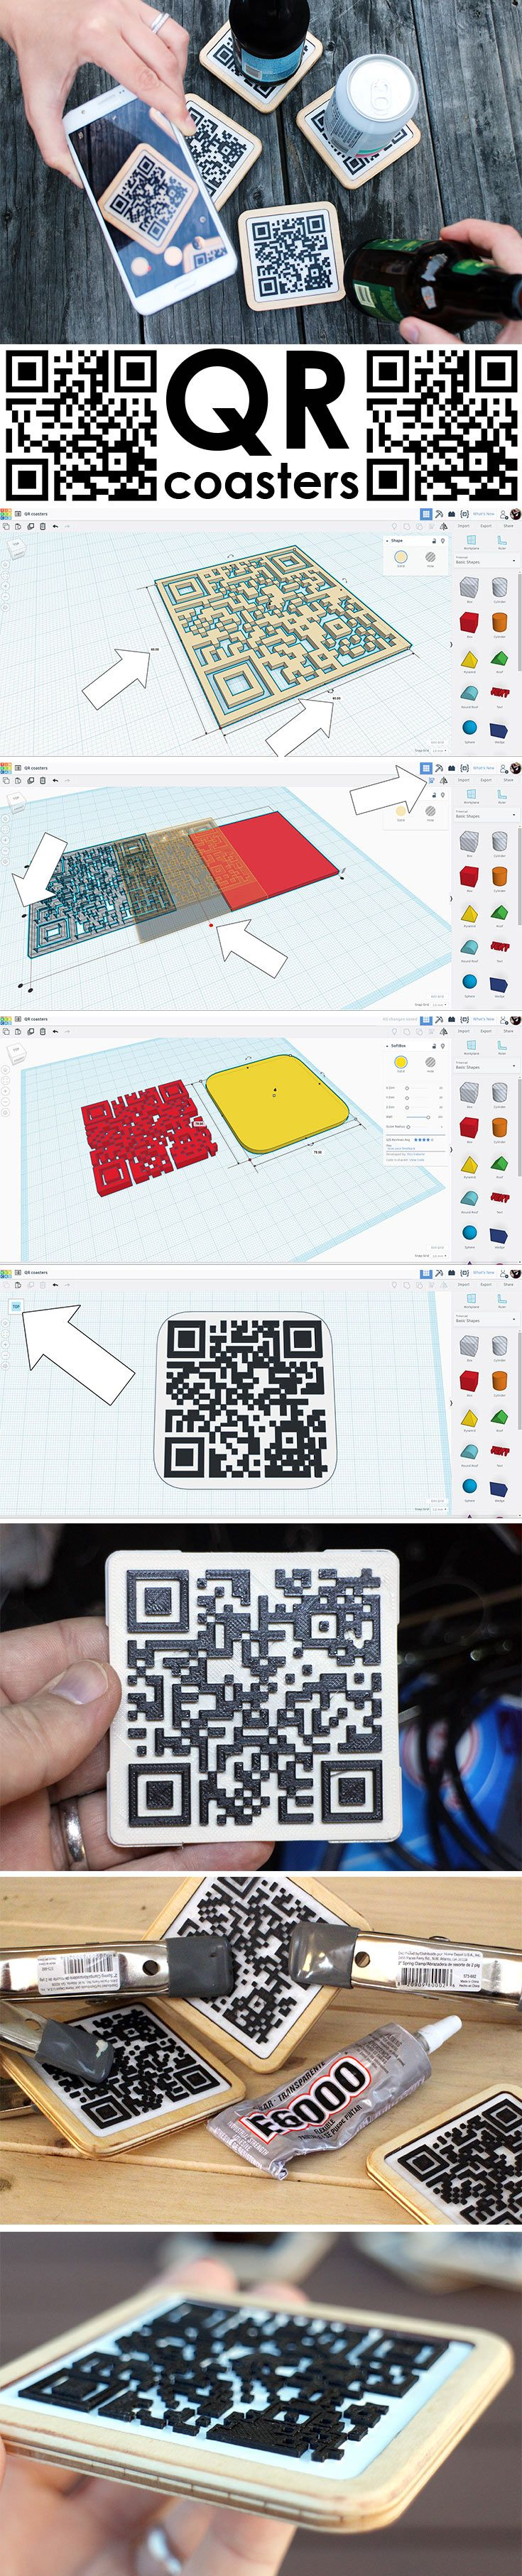 These QR Coasters are great way to inform your guests at your next #party!